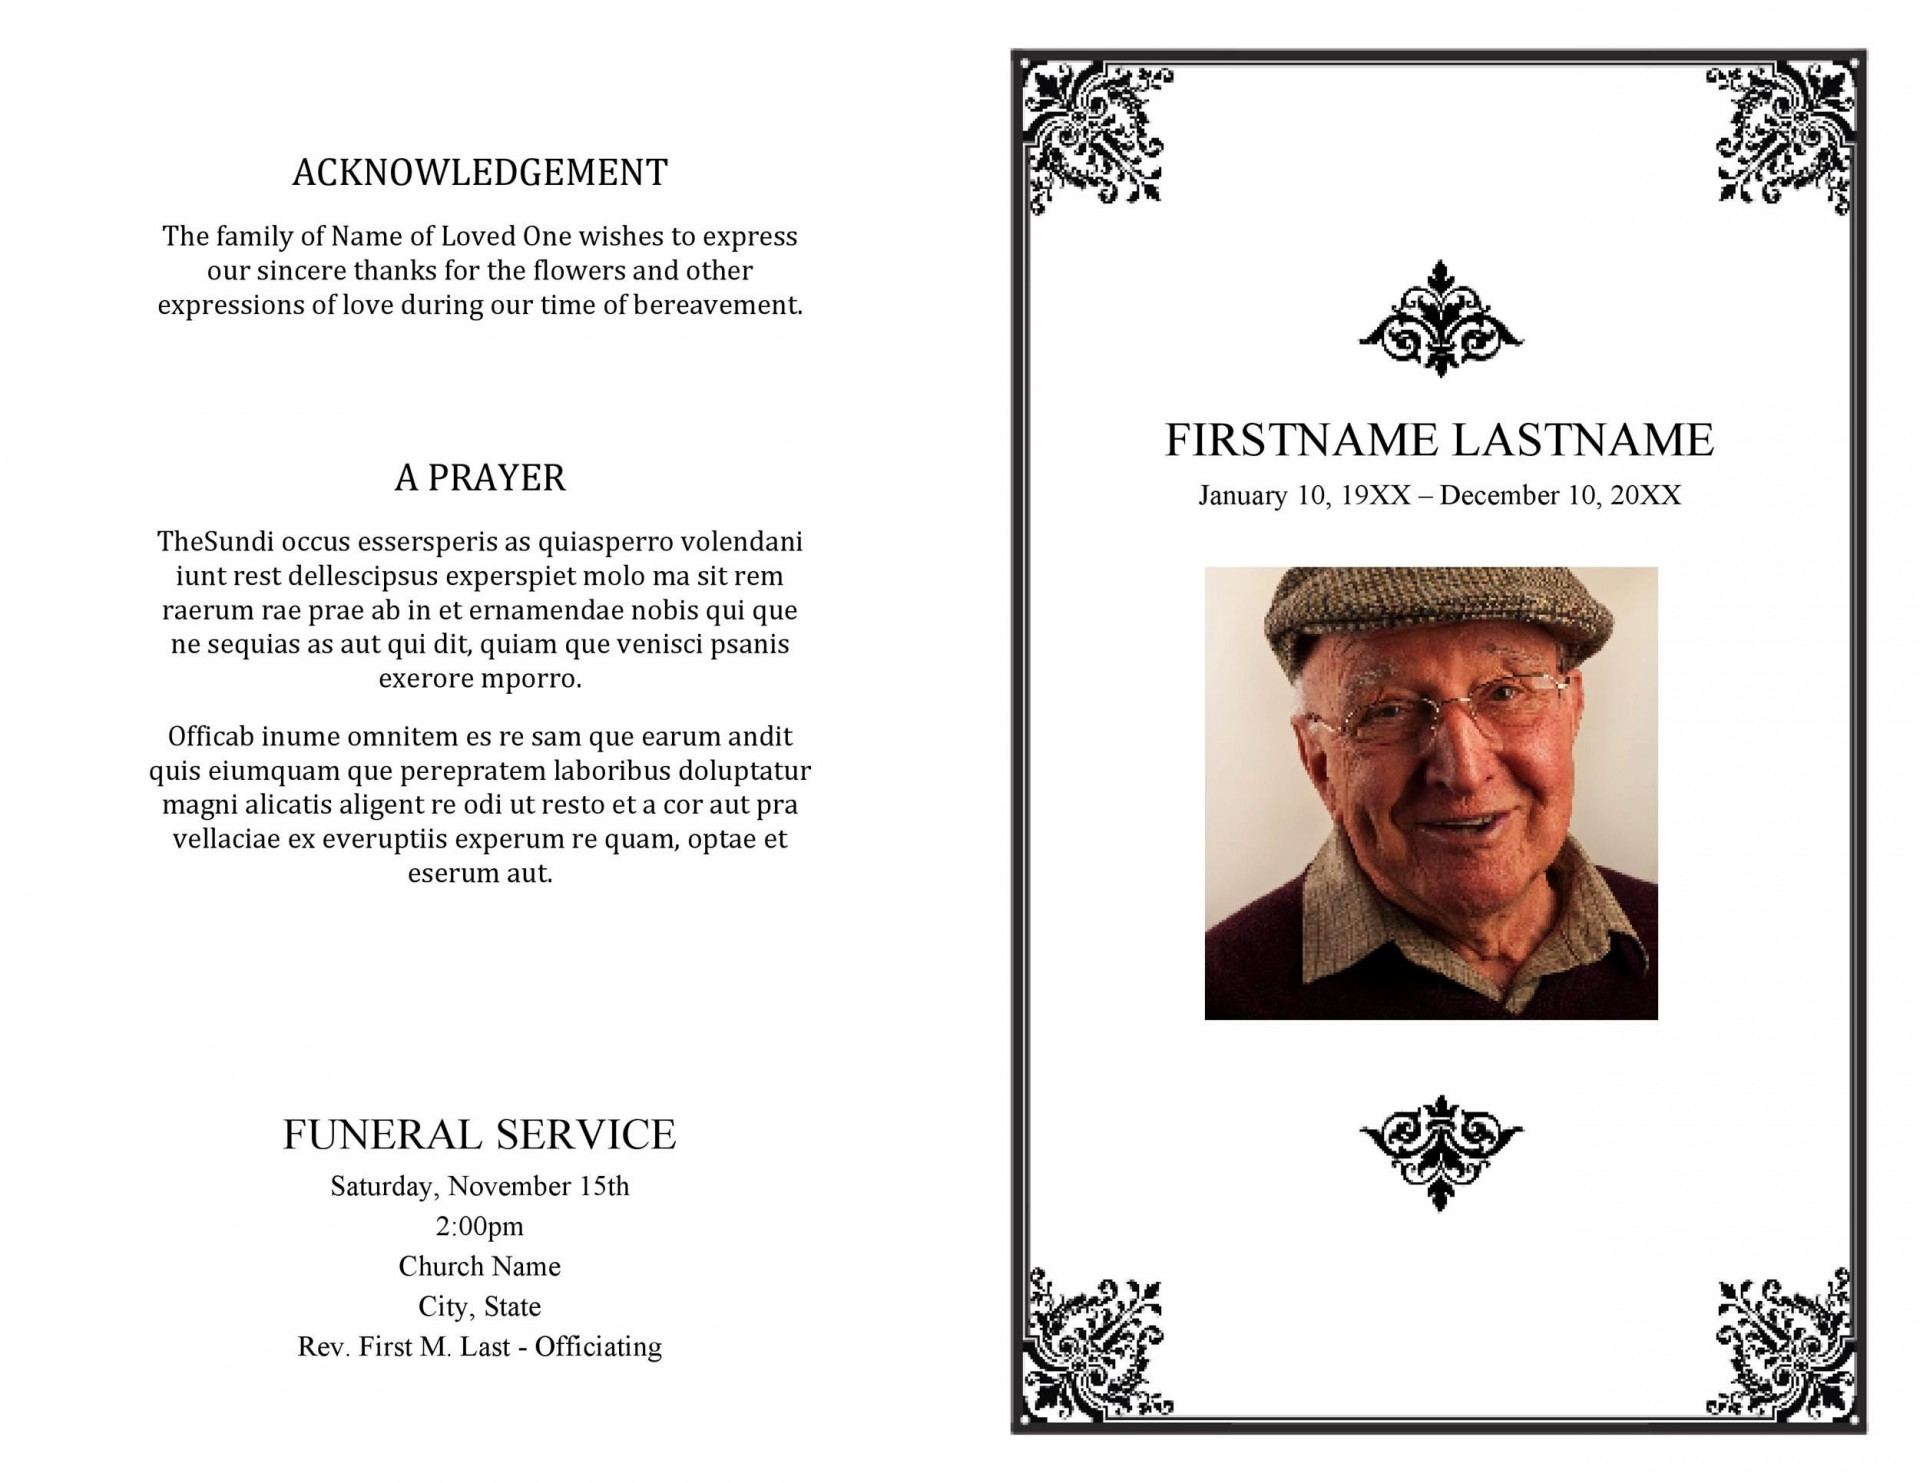 007 Impressive Free Funeral Pamphlet Template Idea  Word Simple Program Download Psd1920